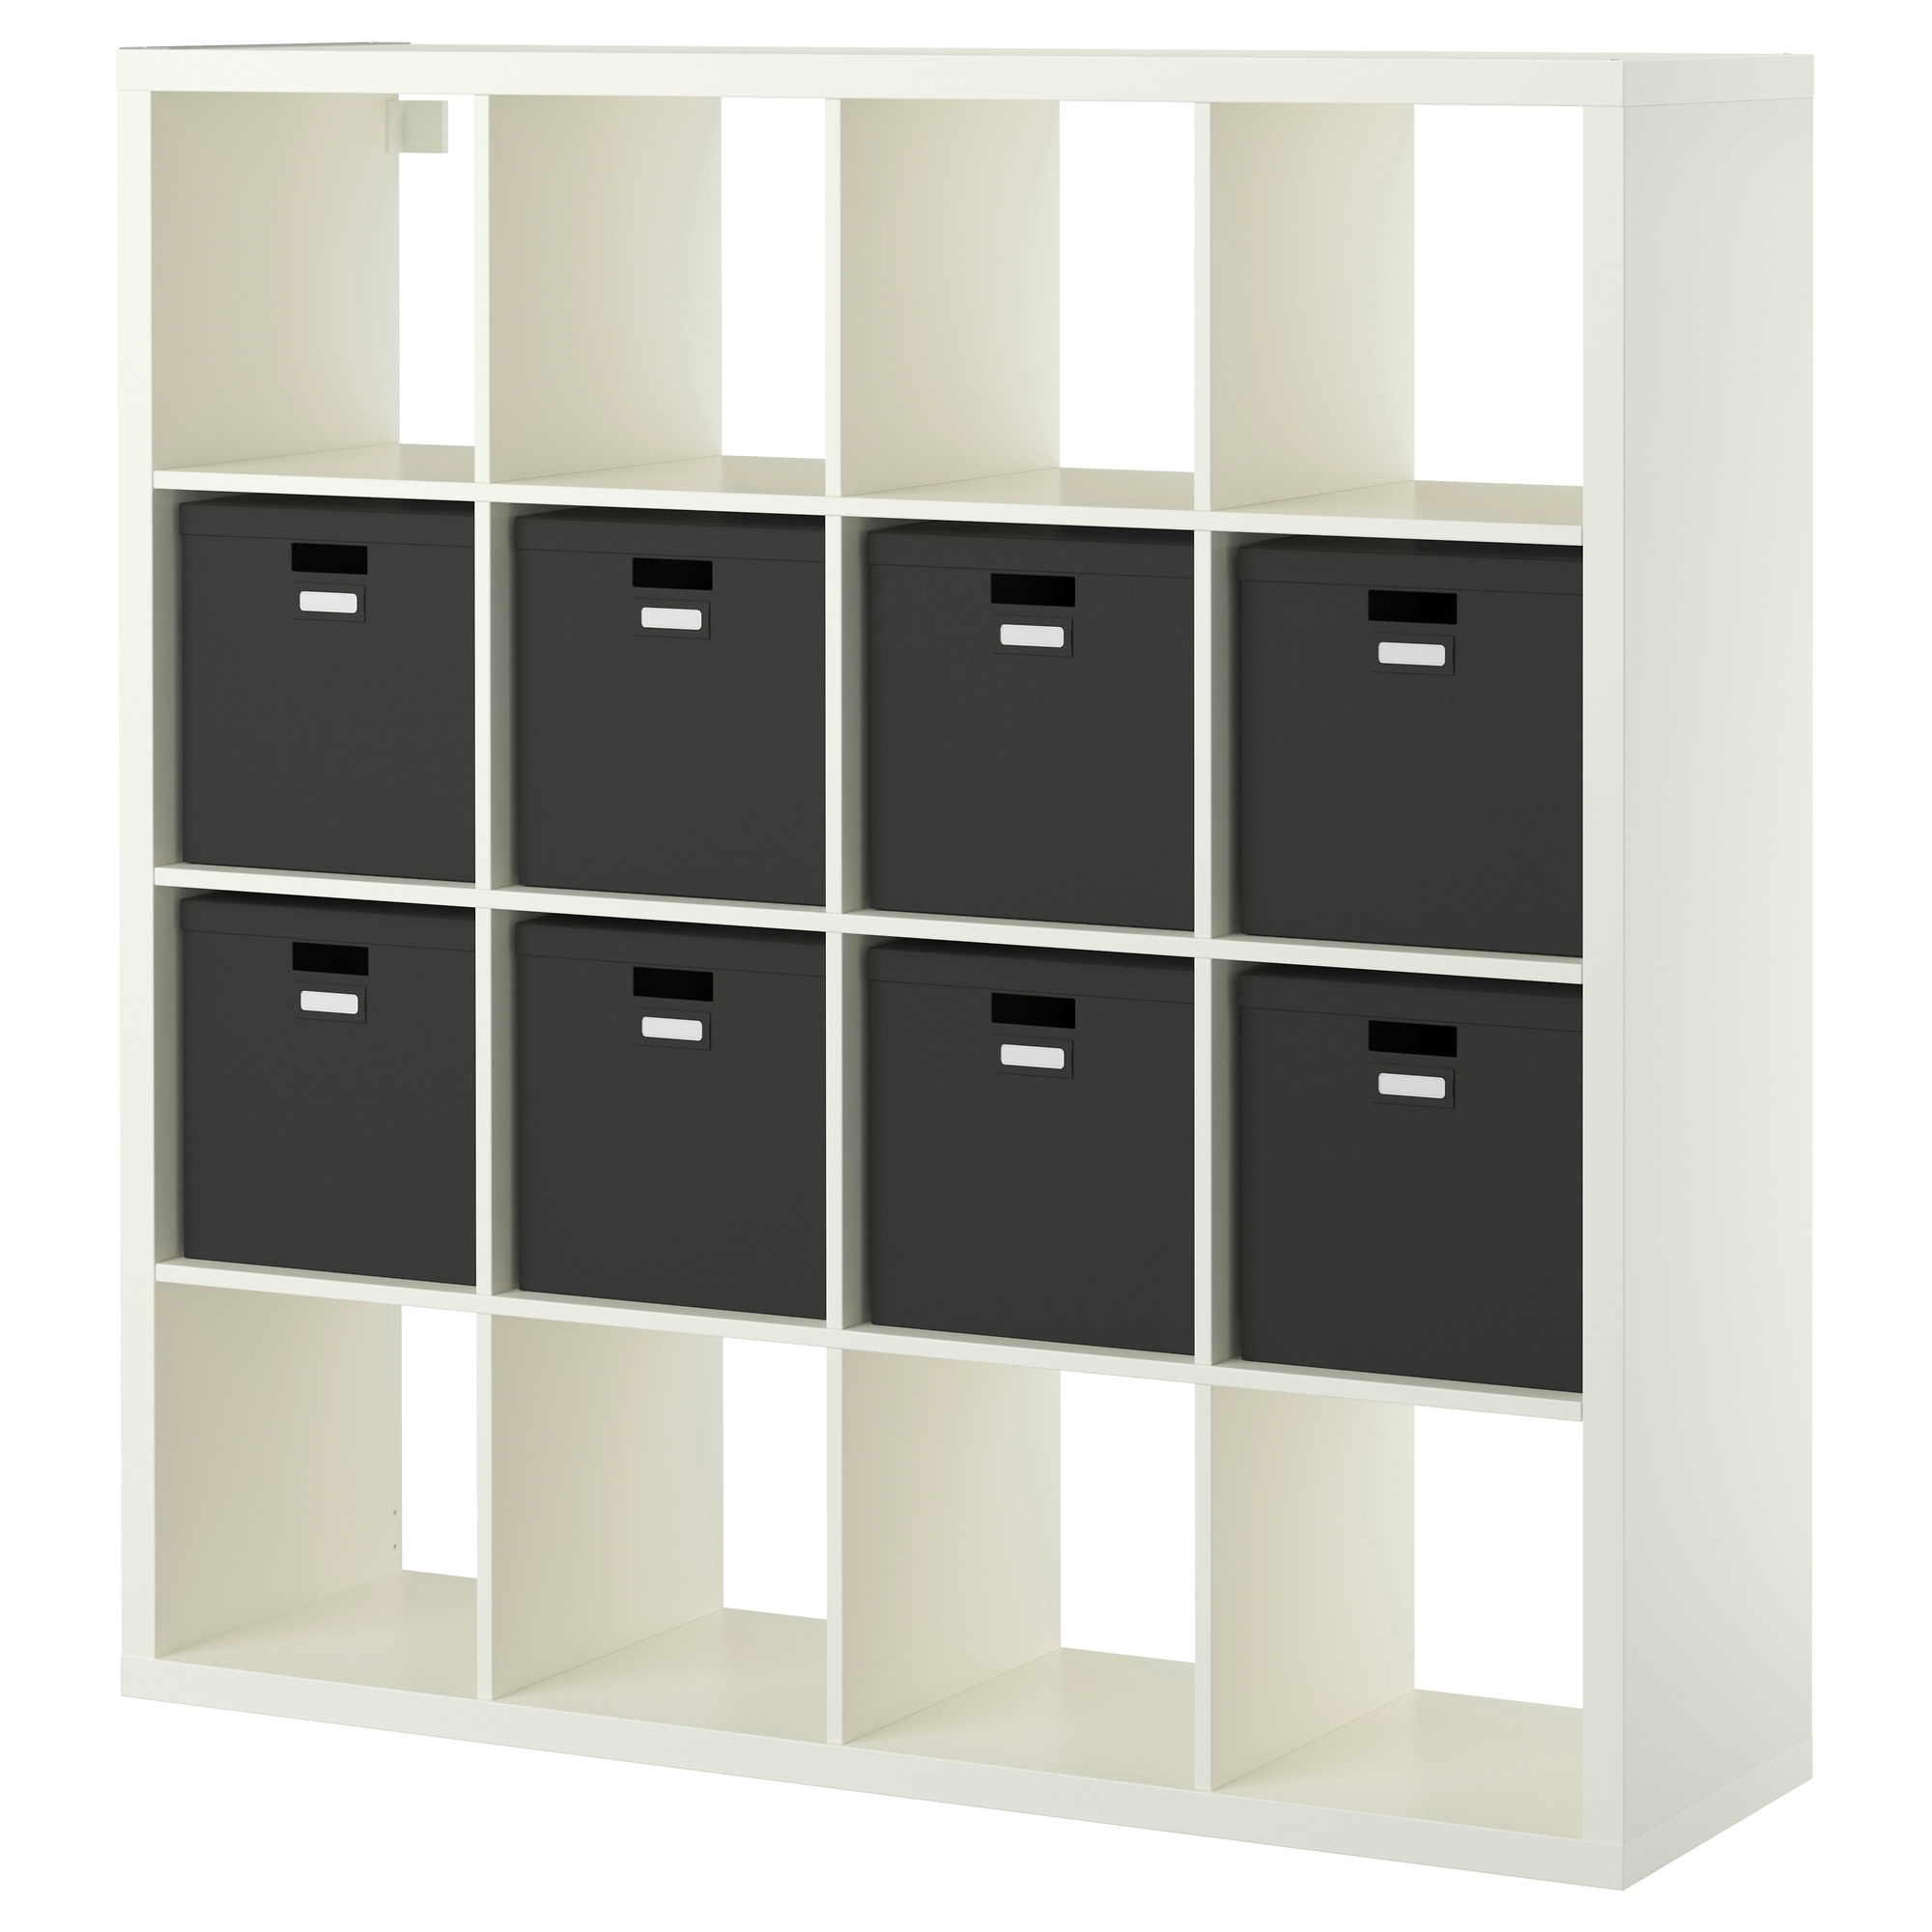 KALLAX shelf unit with 8 inserts, white Width: 57 7/8